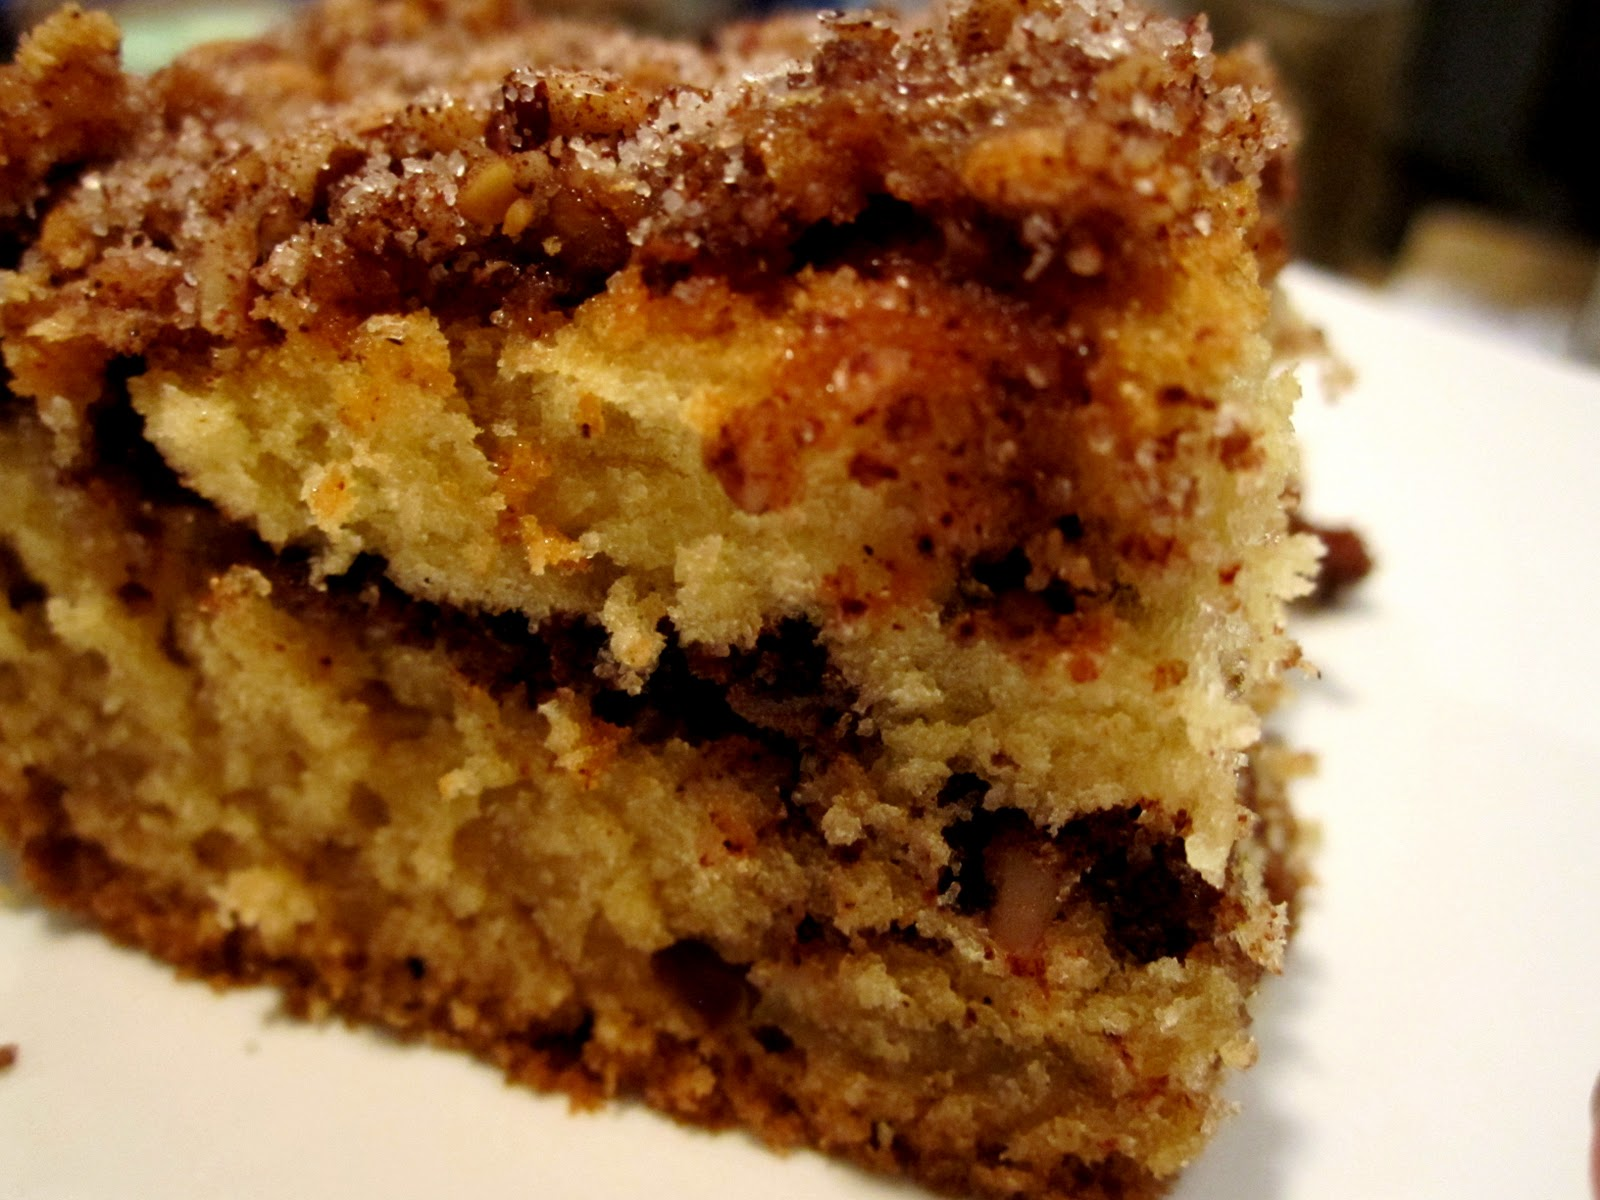 Life's Sweeter with Chocolate: Sour Cream Coffee Cake